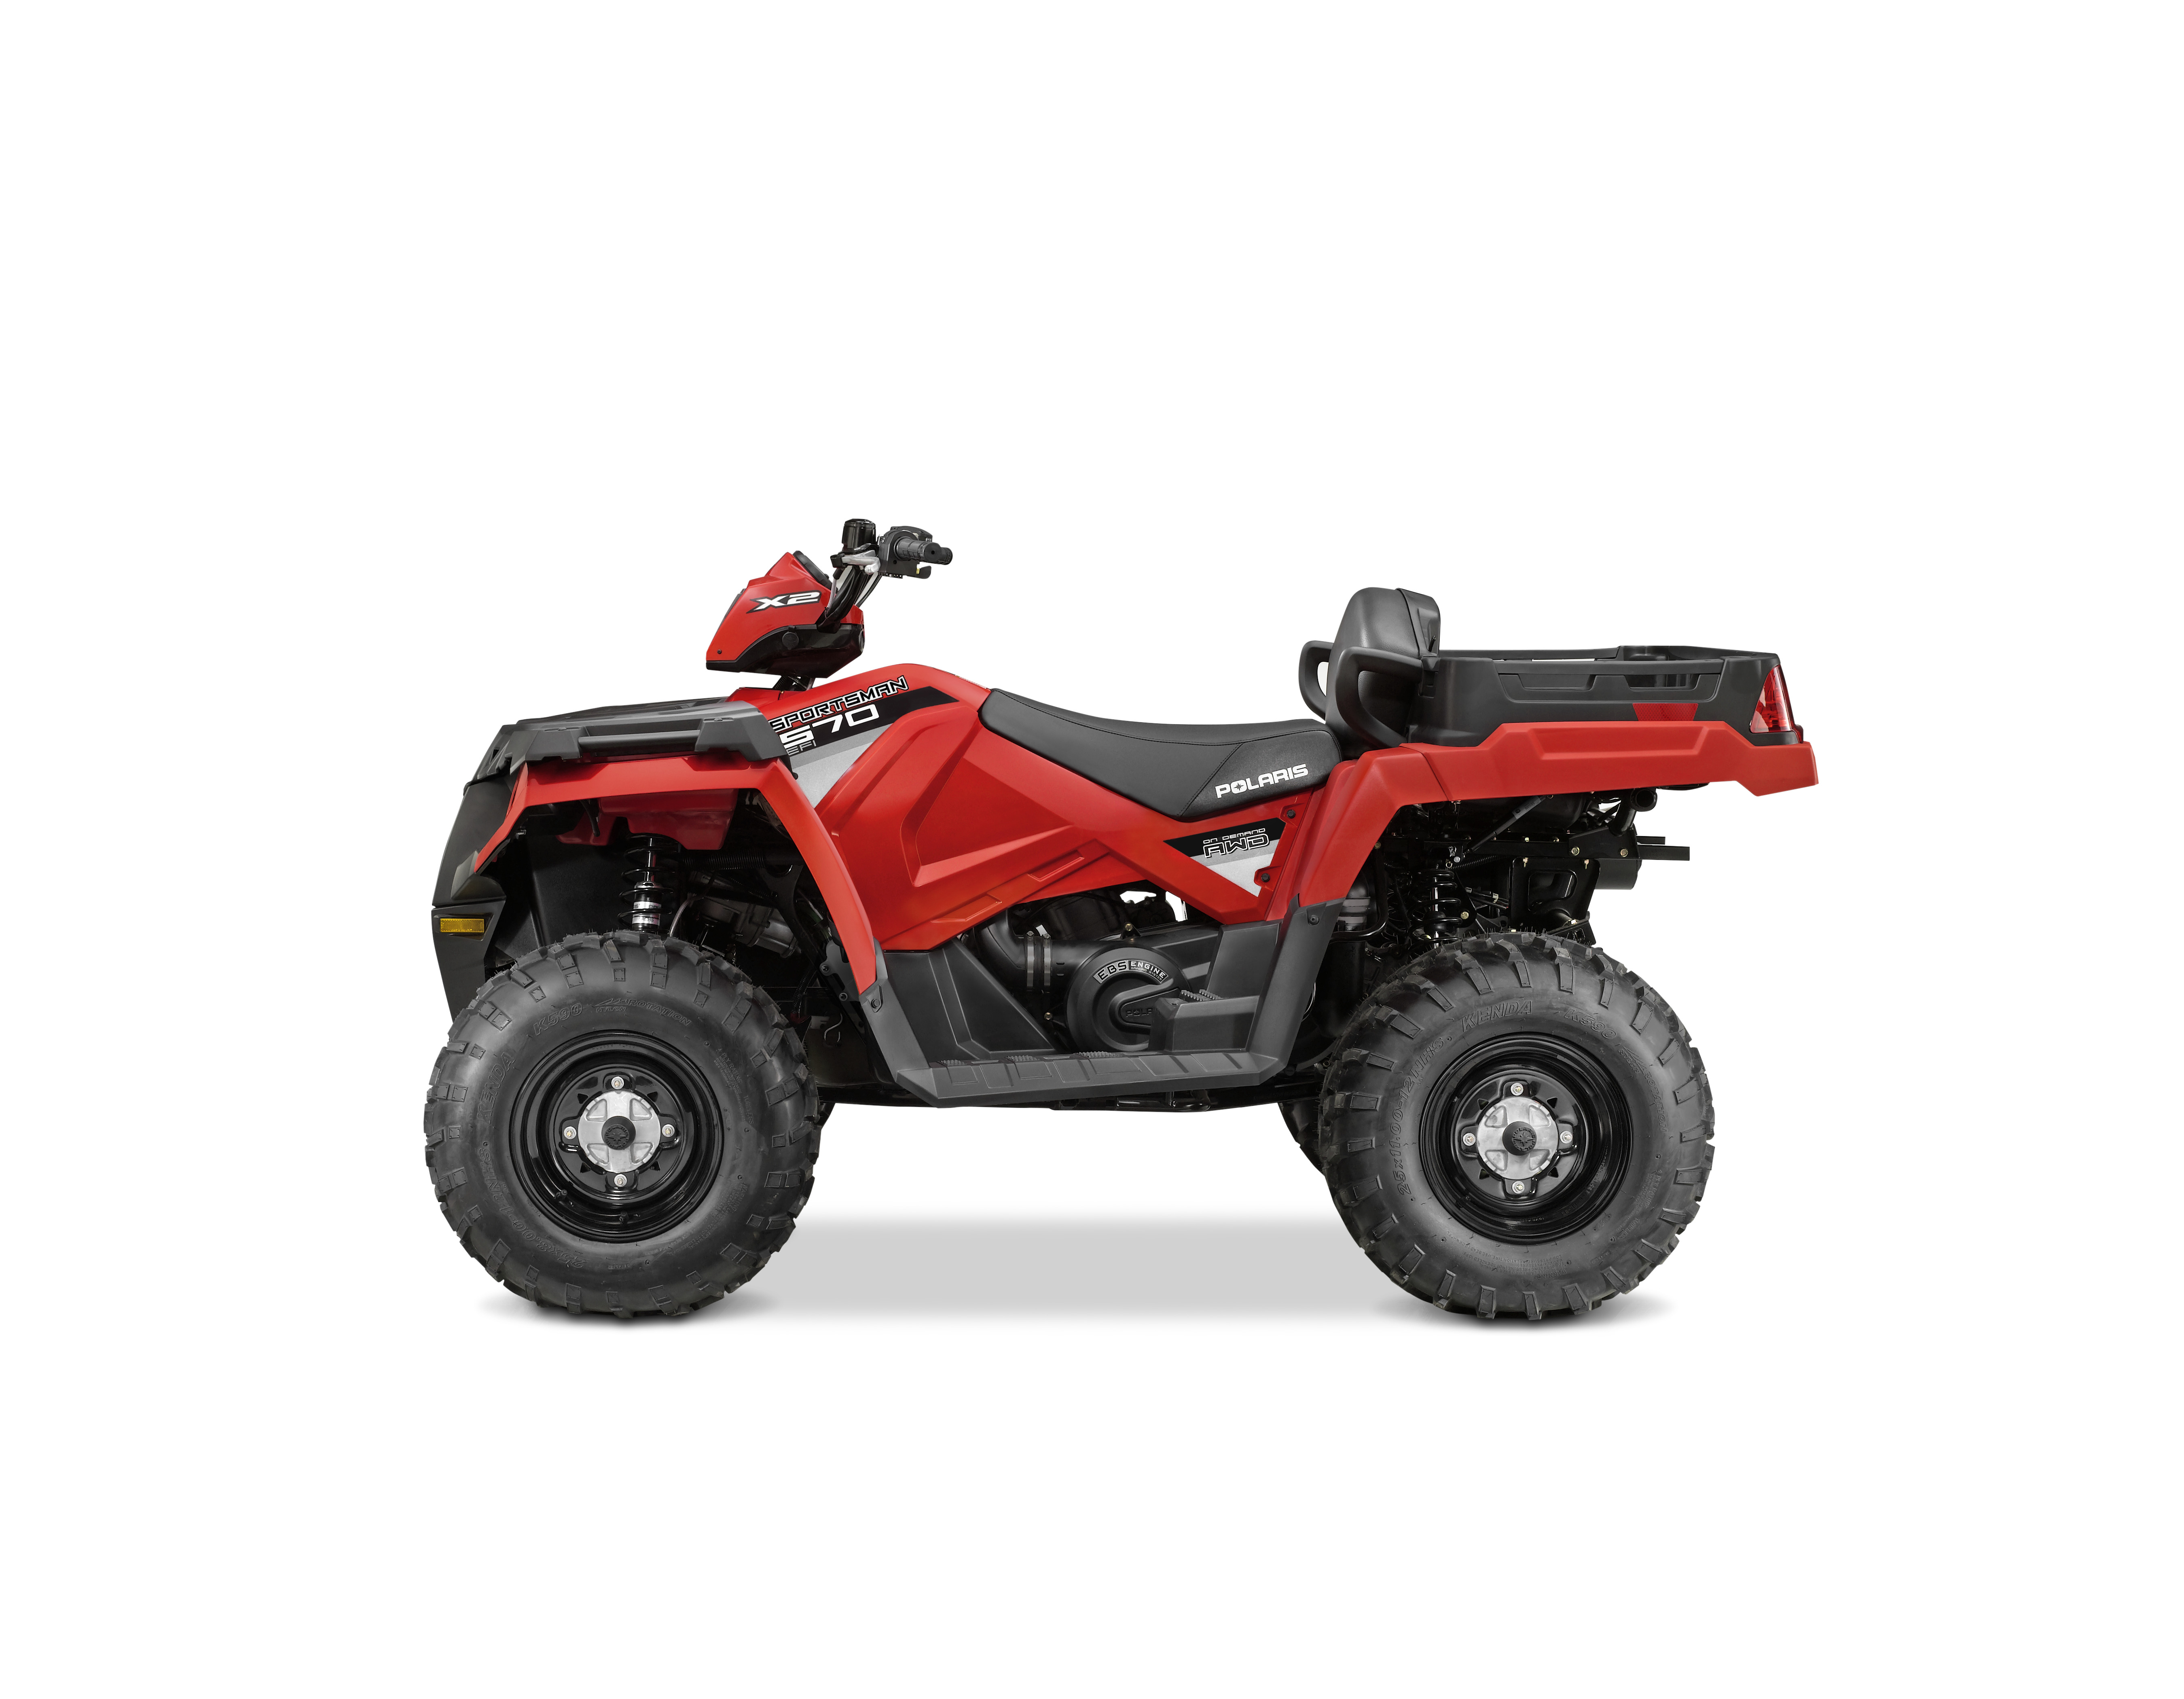 polaris recalls sportsman 570 all terrain vehicles due to. Black Bedroom Furniture Sets. Home Design Ideas